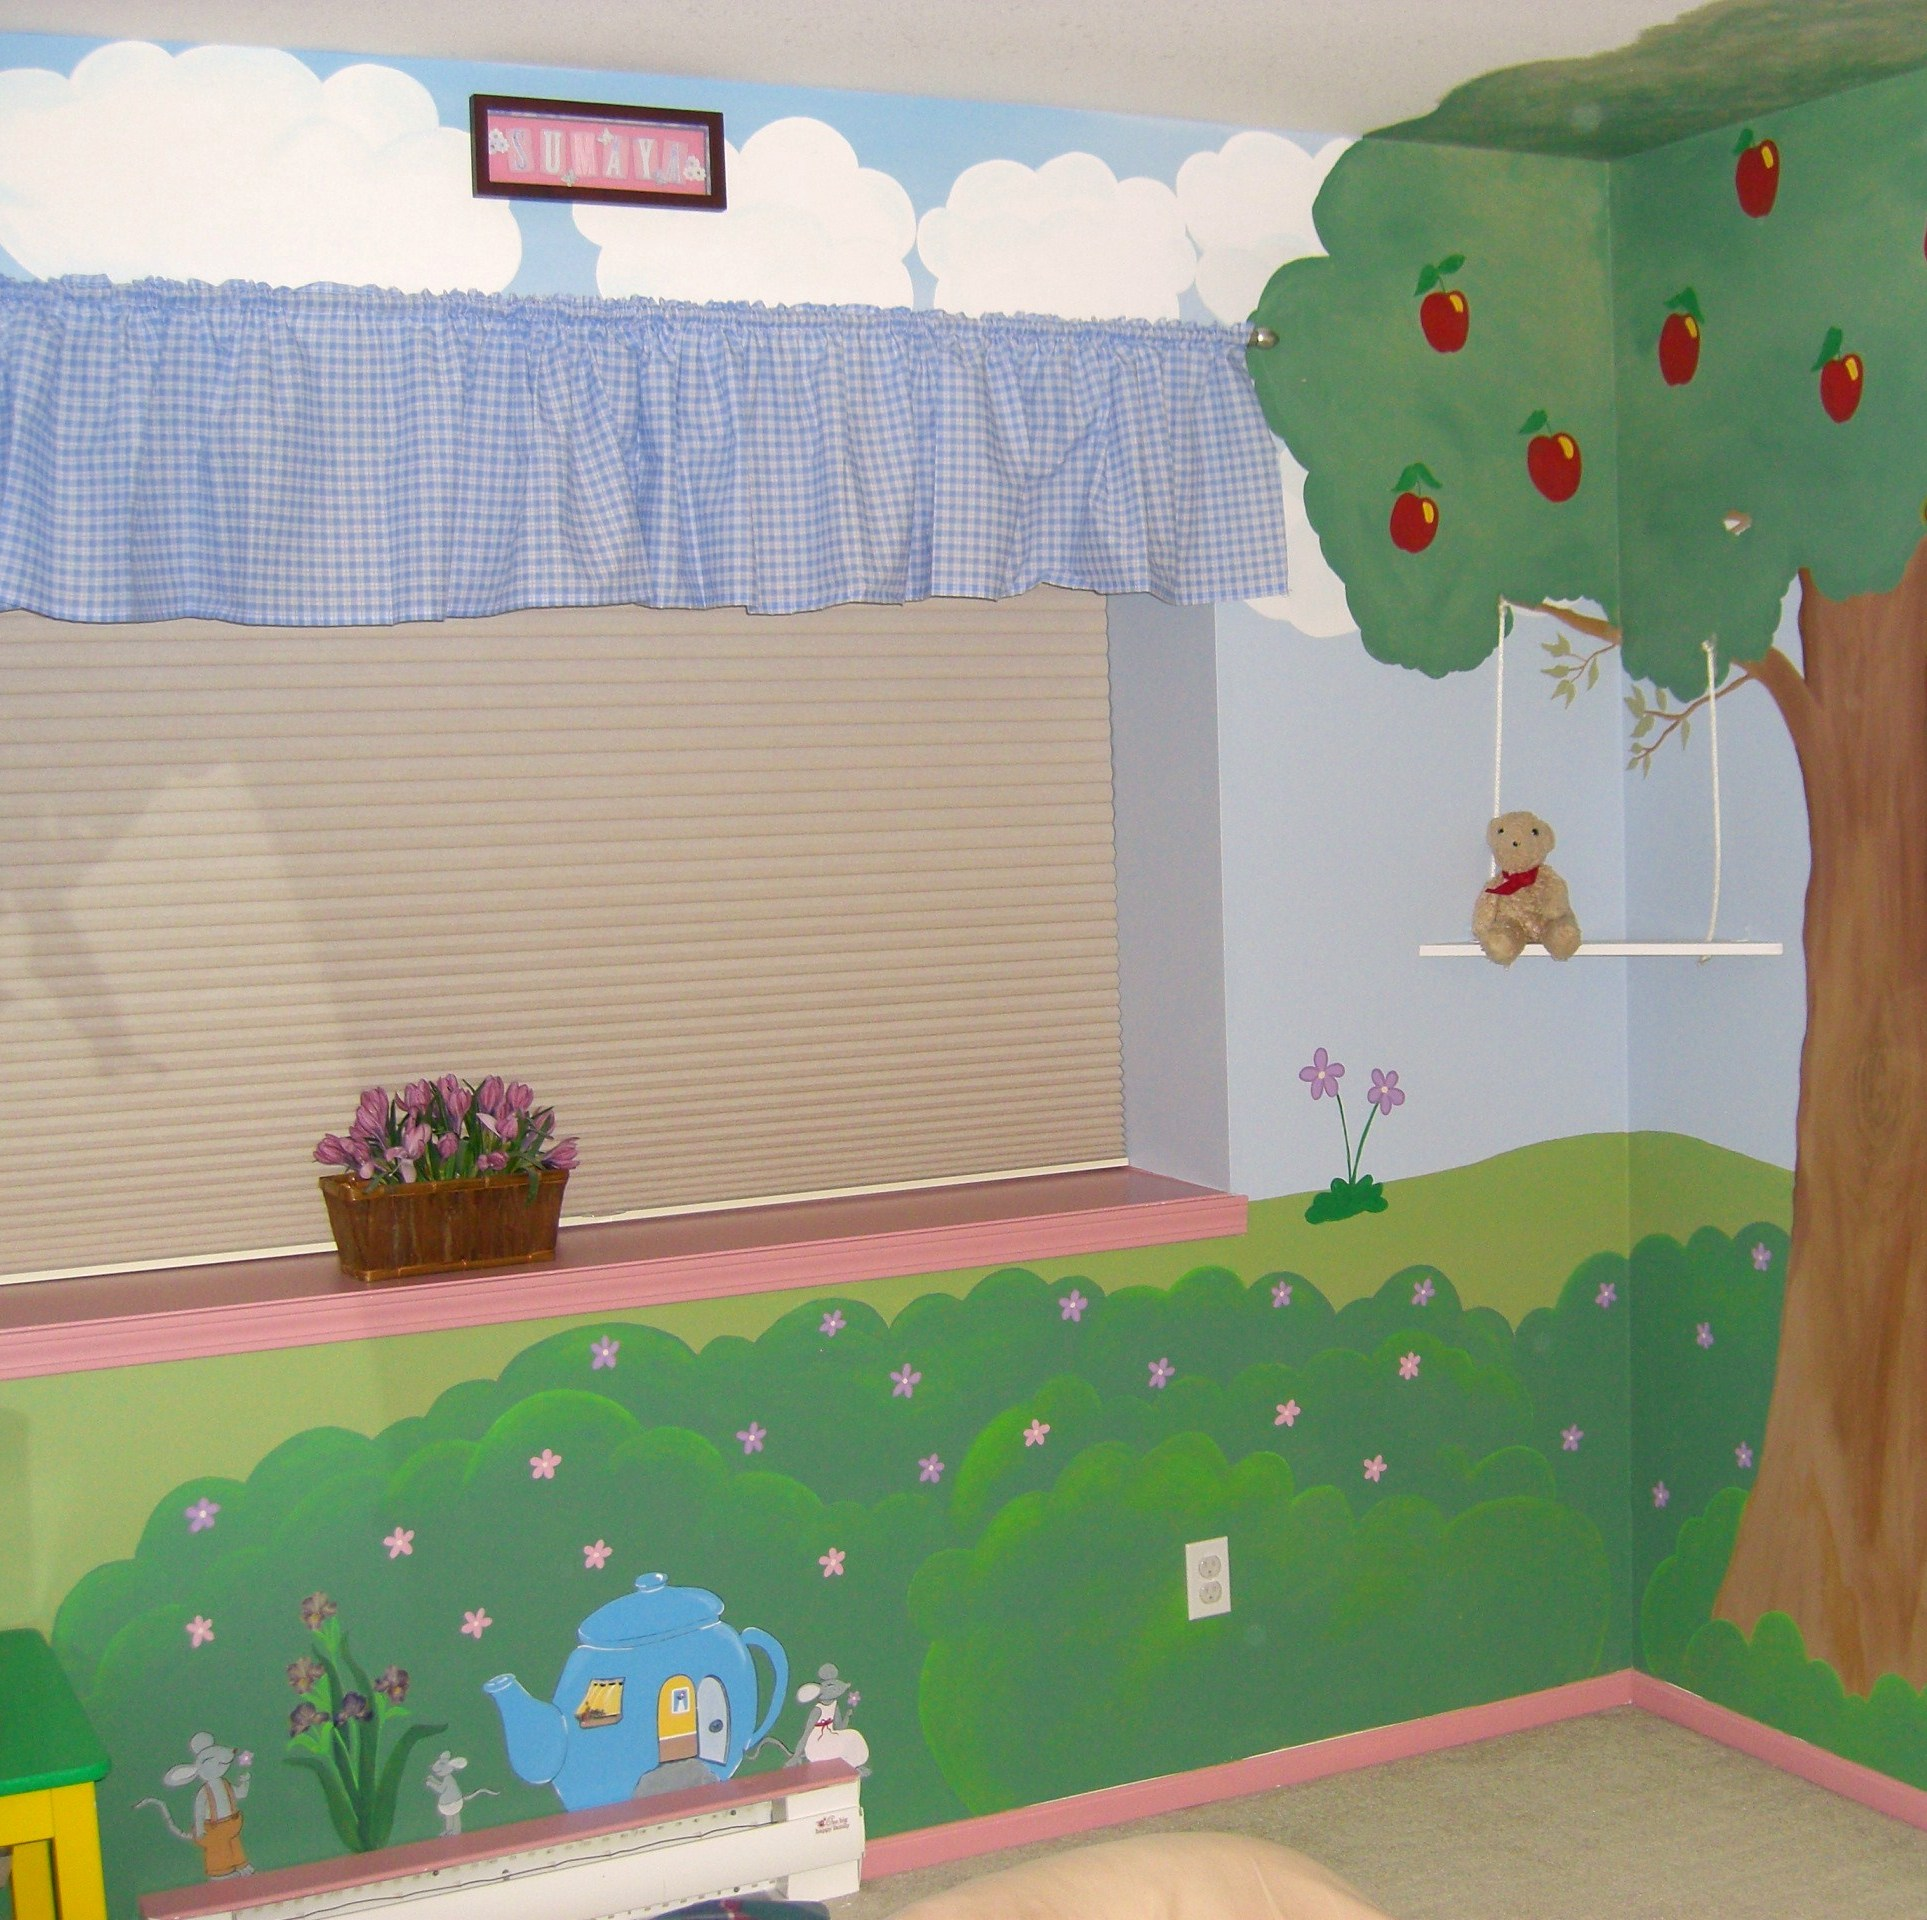 Apple tree kim 39 s magical murals for Apple tree mural